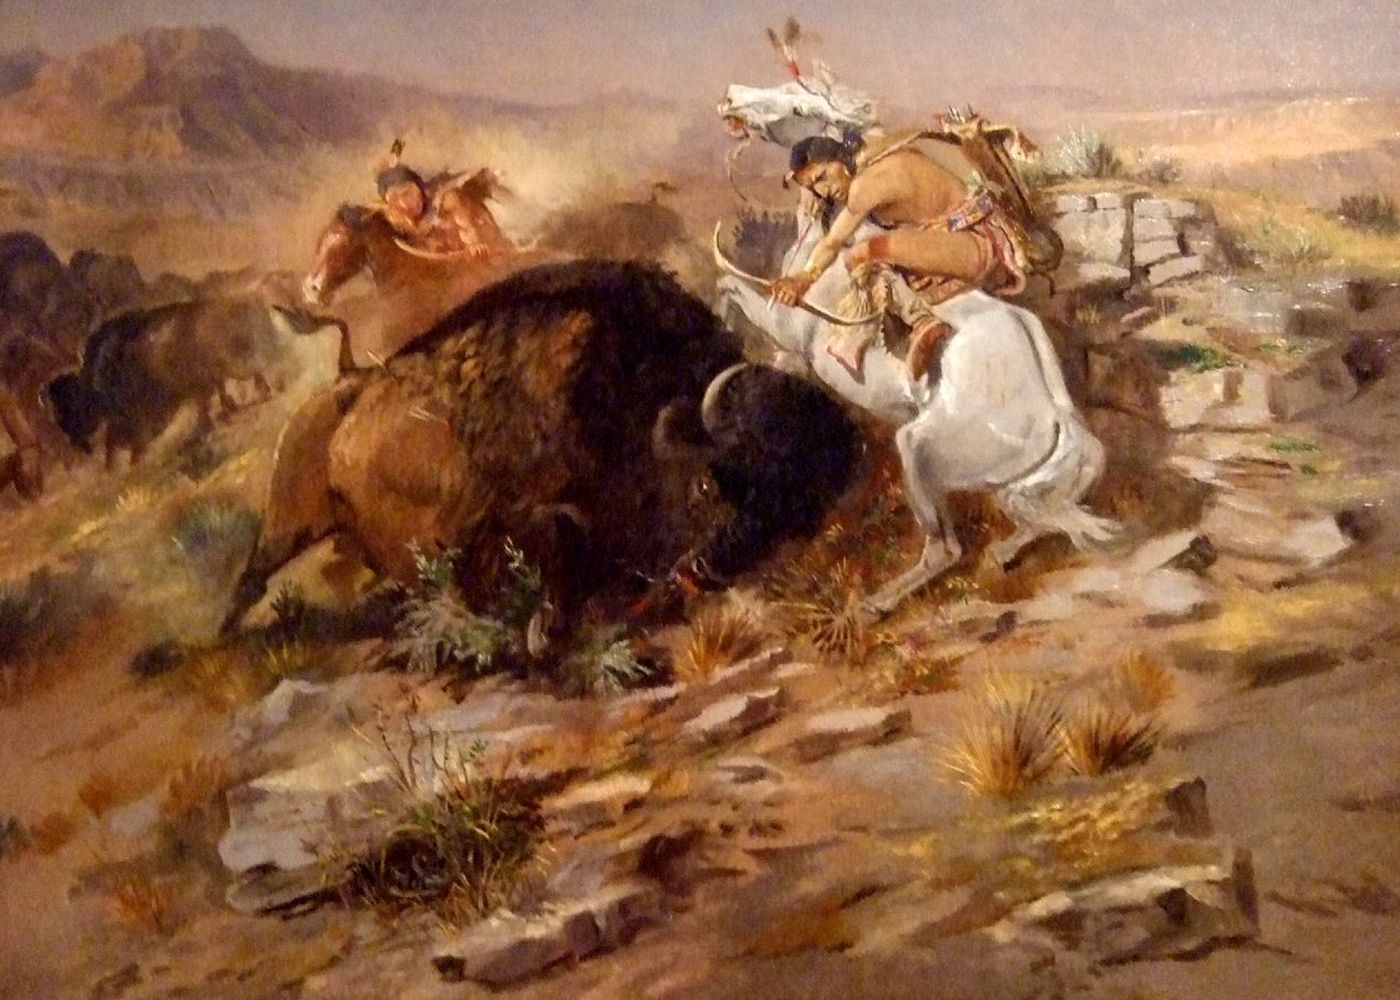 Original title:    Description English: Charles Marion Russell - Buffalo Hunt Date 16 August 2009 Source http://masterpieceart.net/charles-marion-russell/ Author Wm M. Martin